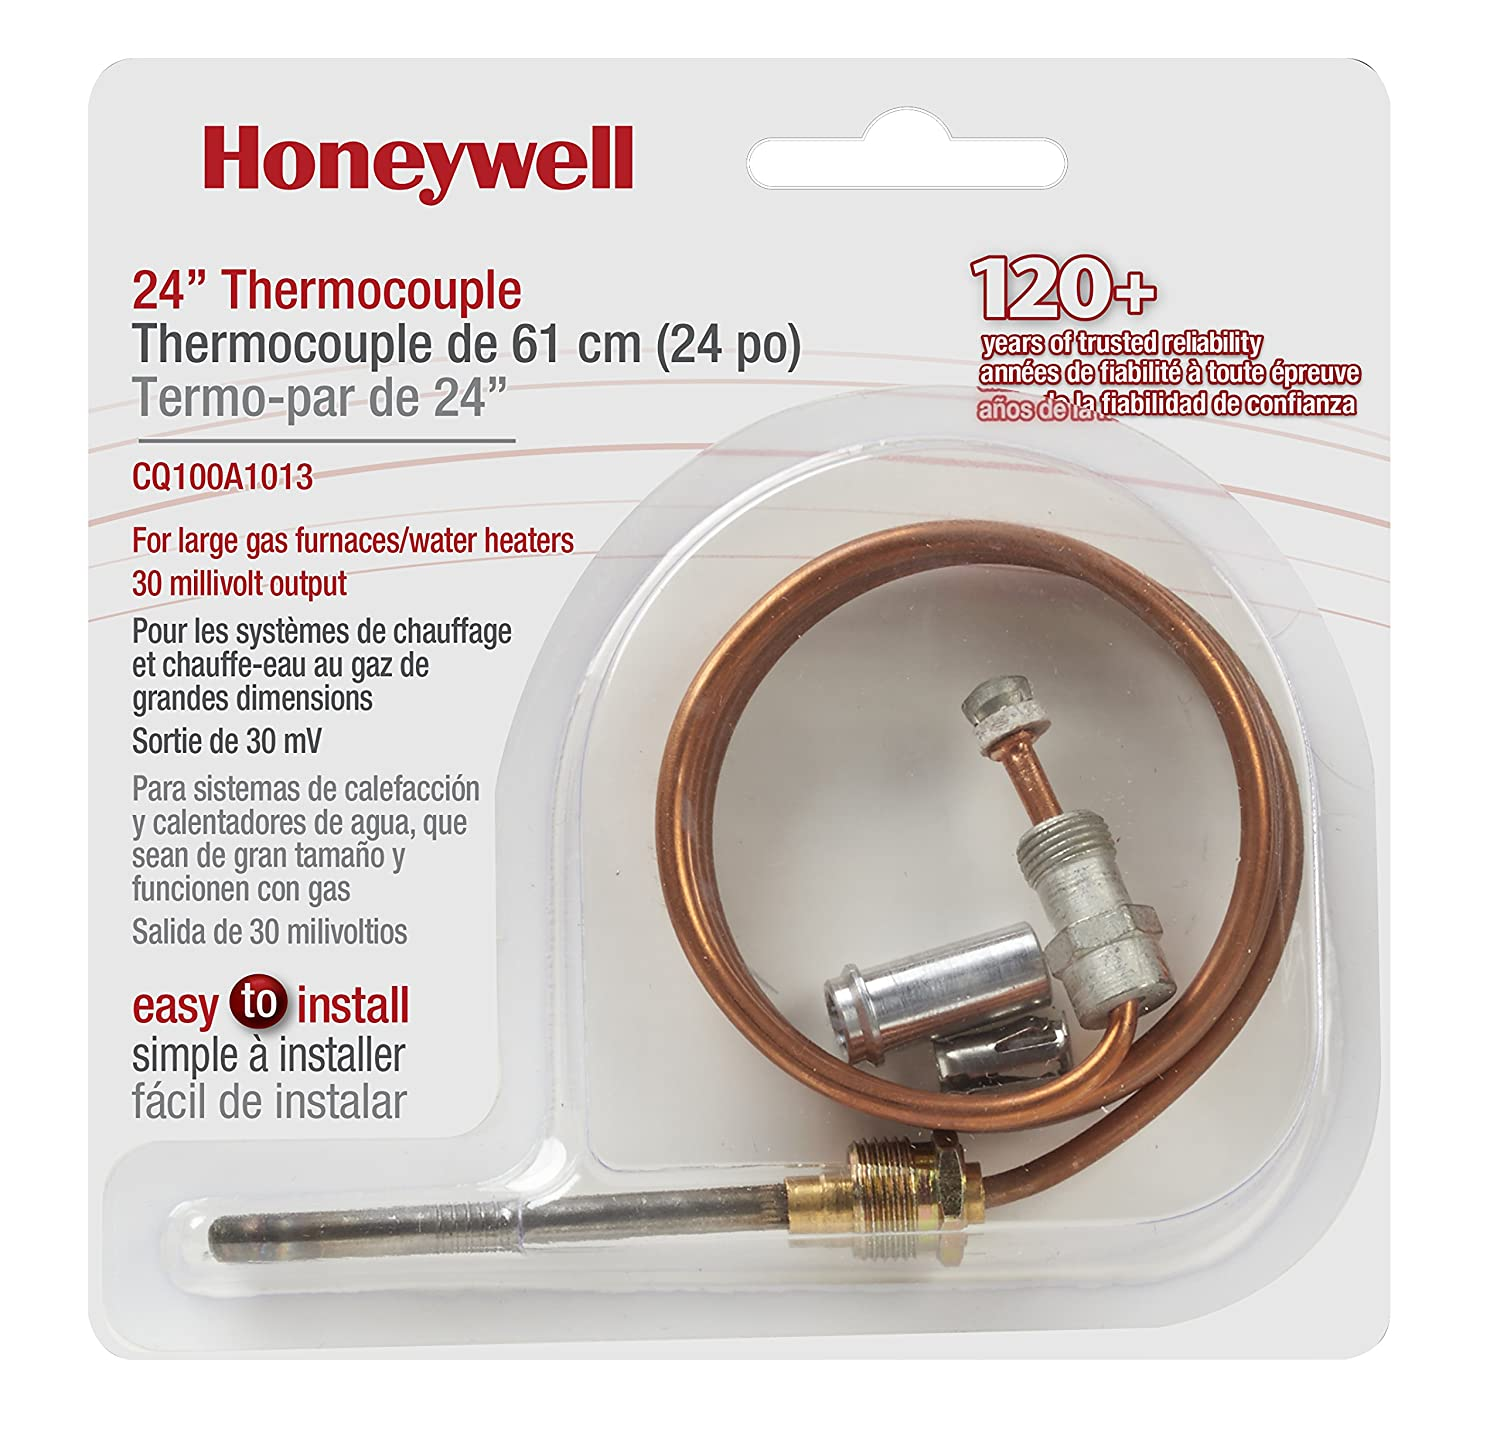 Honeywell Cq100a1013 24 Inch Replacement Thermocouple Gas Furnace Regulator Wiring For Furnaces Boilers And Water Heaters Home Improvement